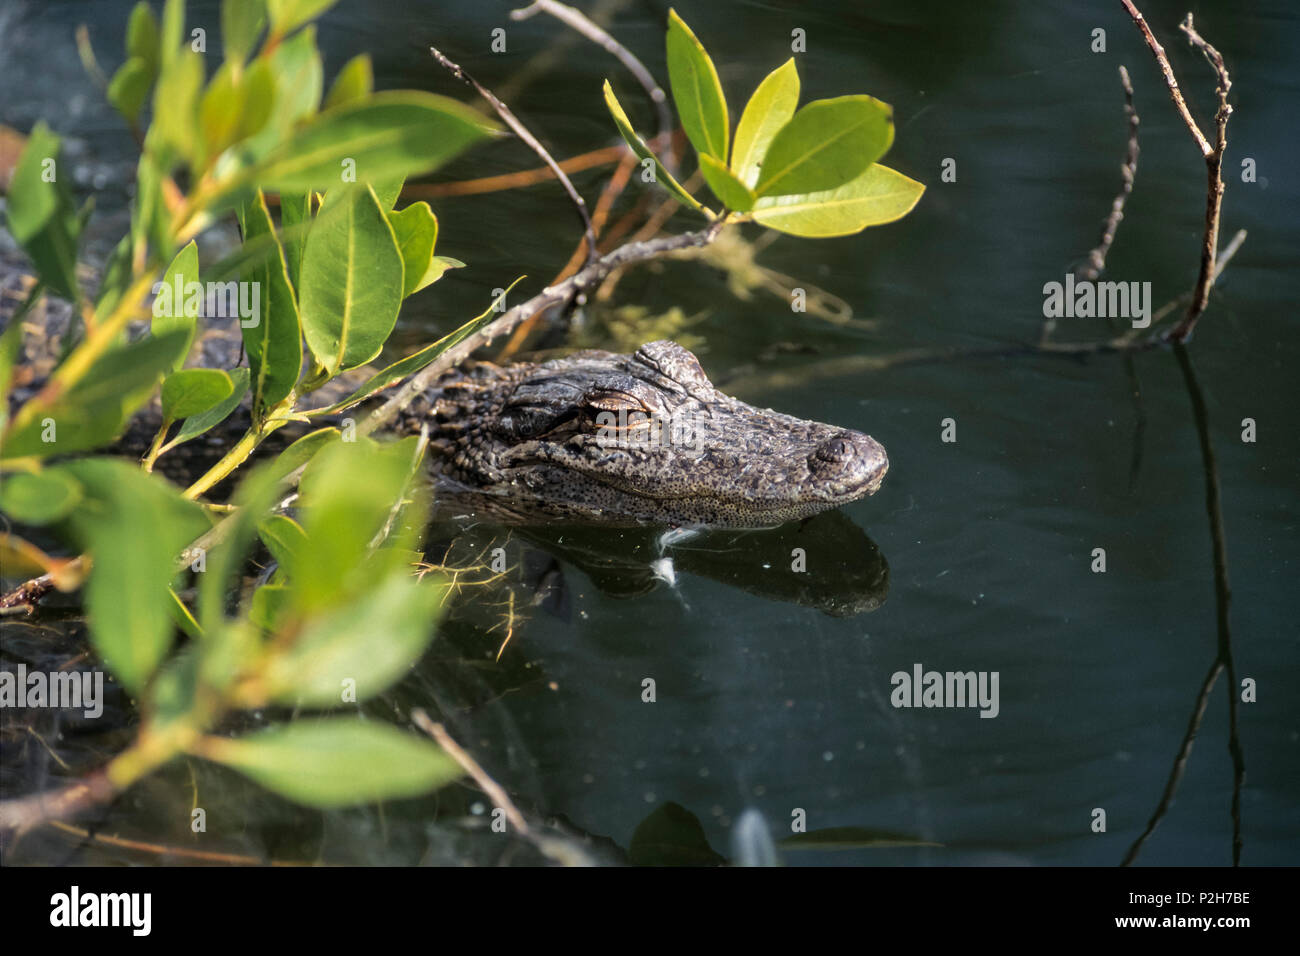 Junge Mississippi-Alligator in Mangroven, Alligator mississippiensis Ding Darling, Florida, USA Stockbild